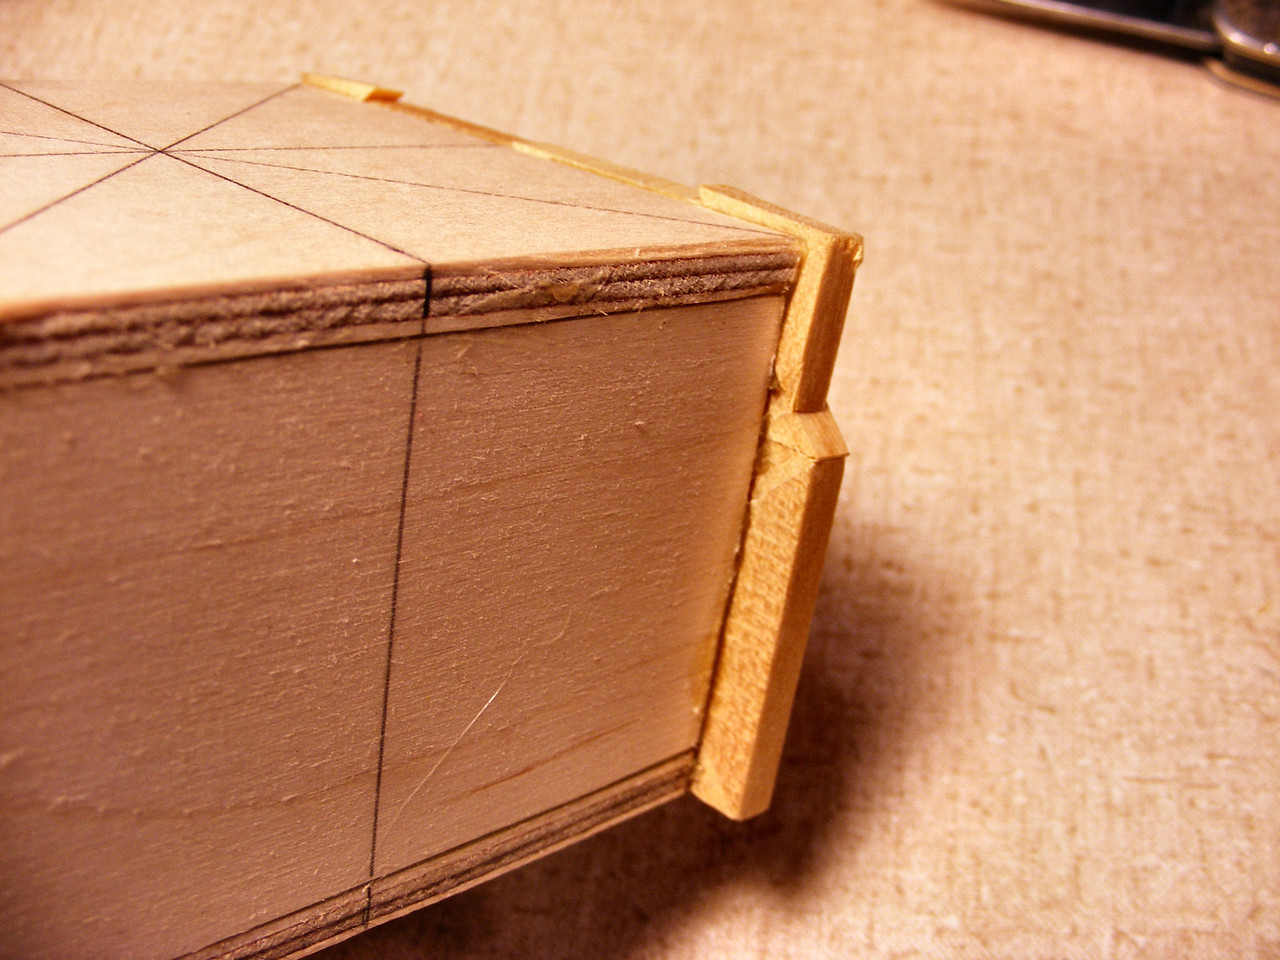 #11 Making a Tiny Sq Box<br /> After the glue is shaved off it will look like this.